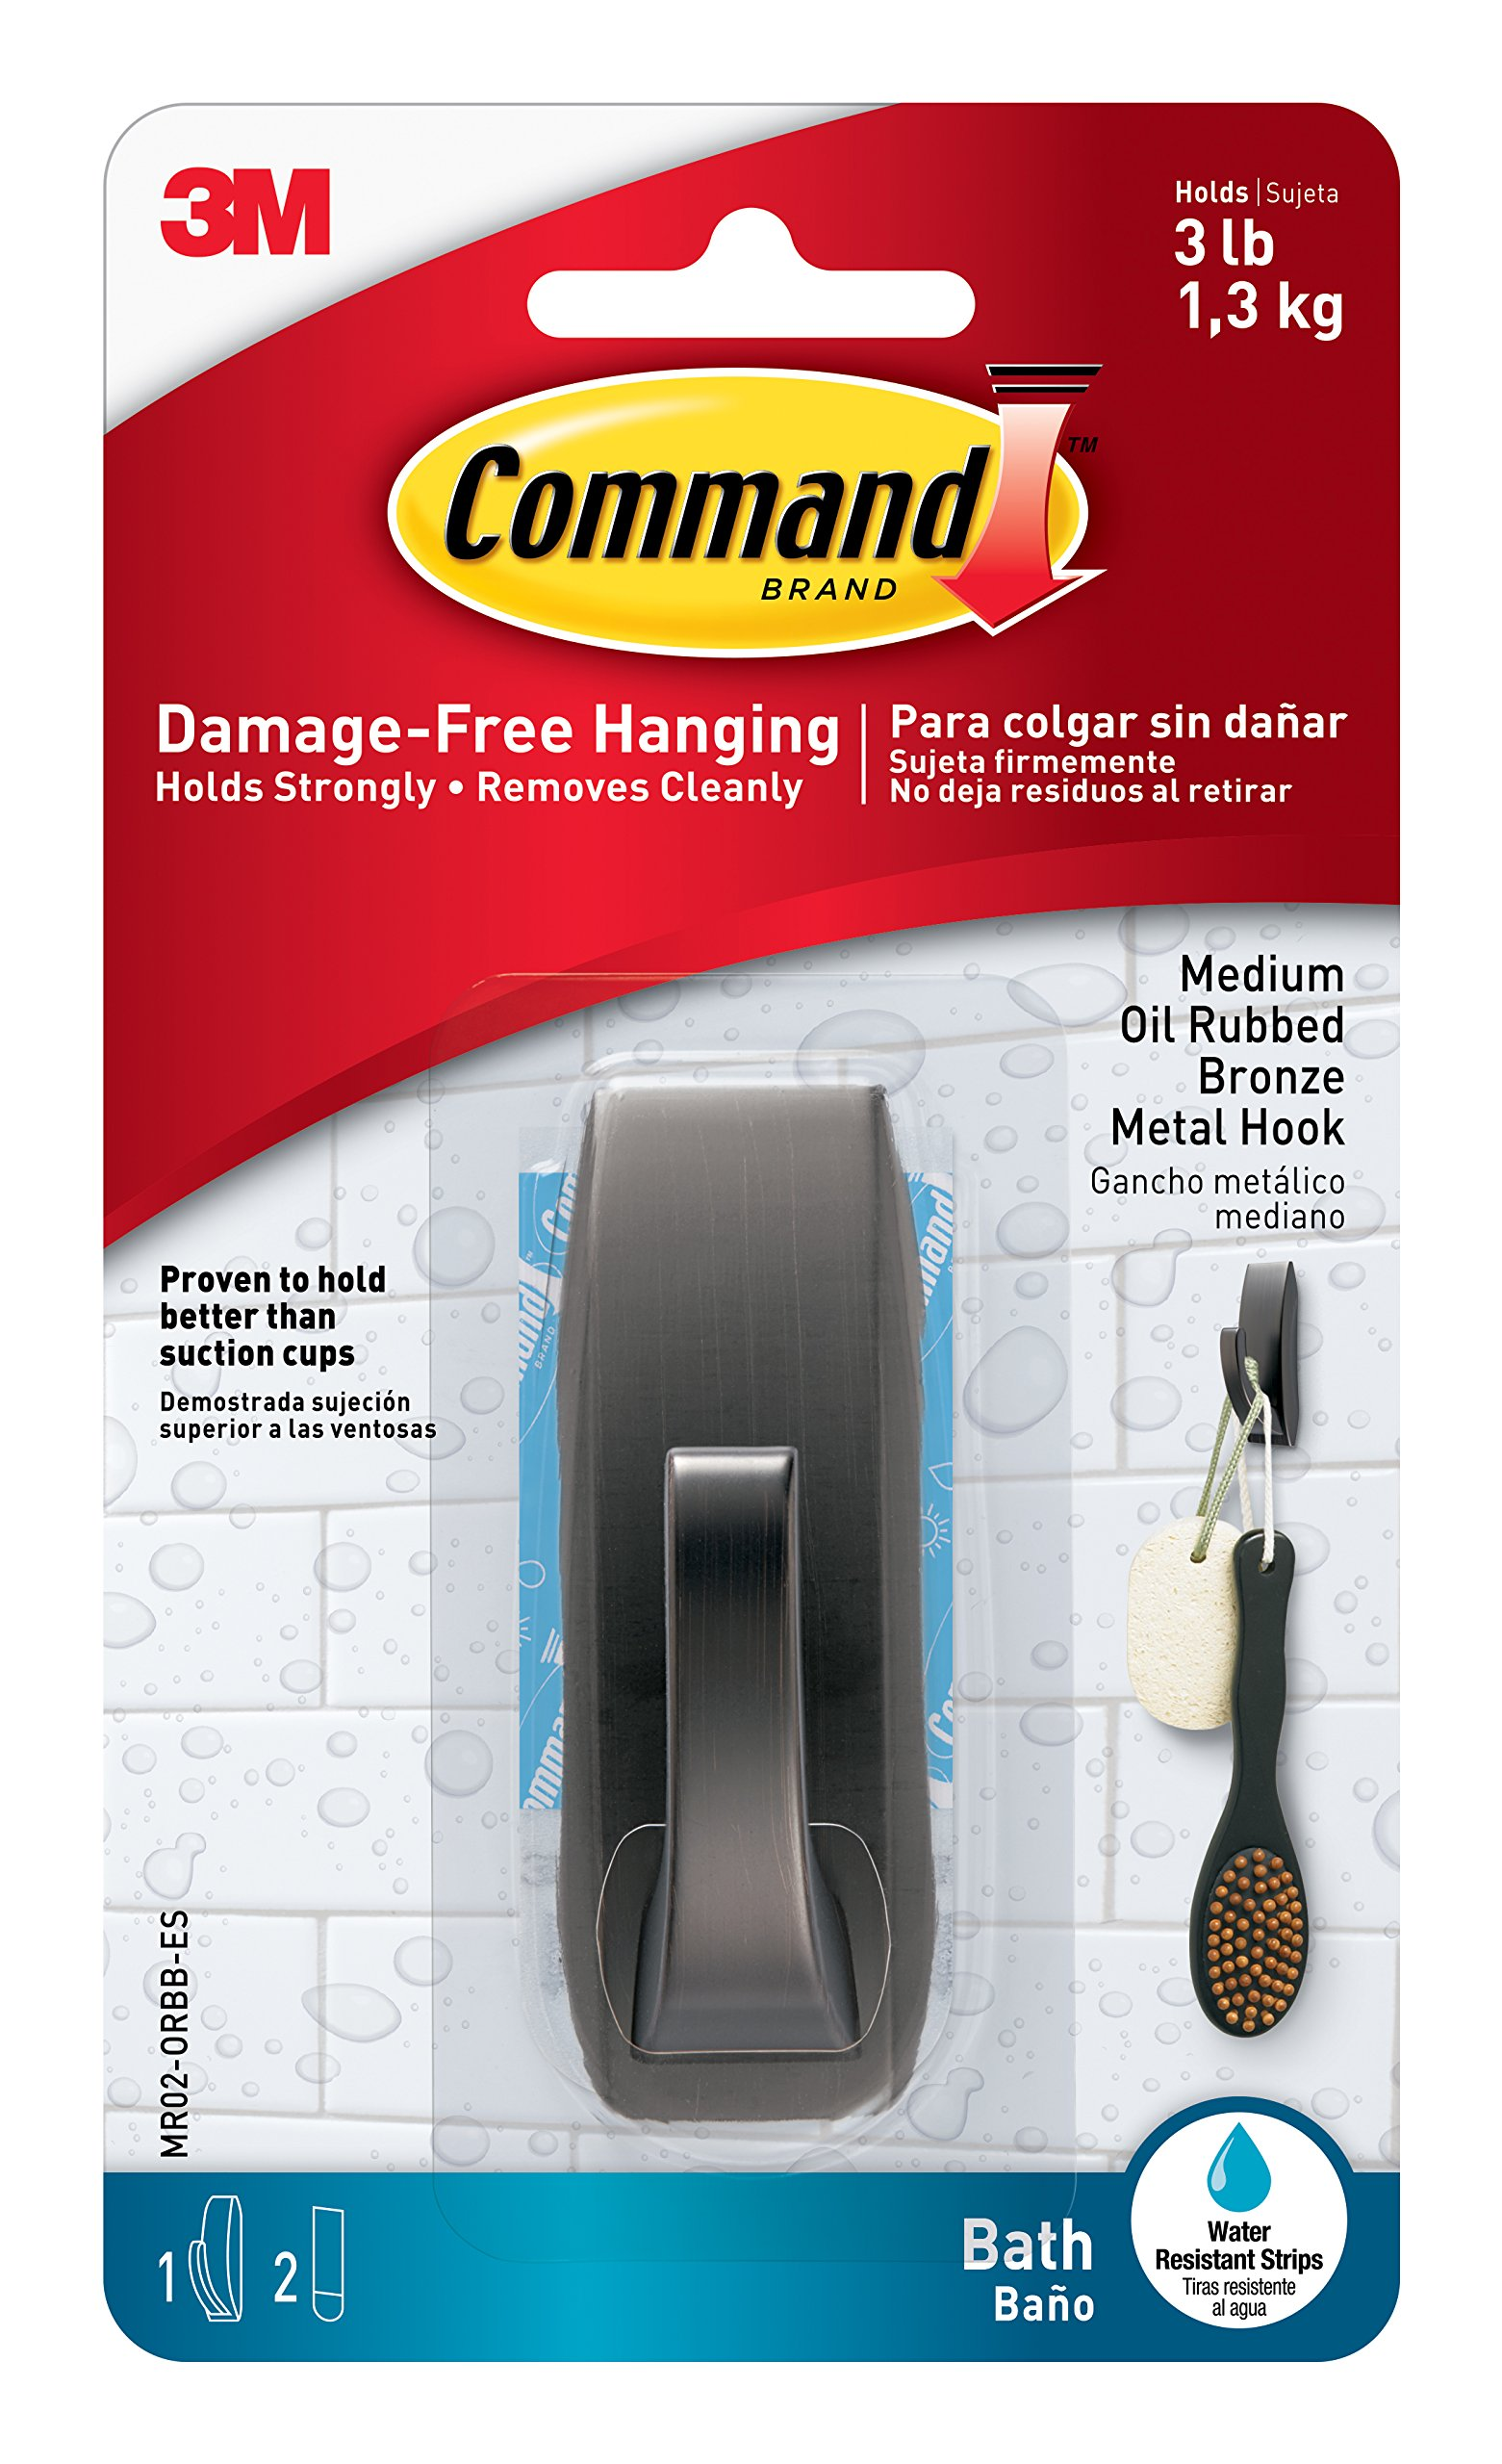 Command Modern Reflections Metal Bath Hook, Medium, Oil Rubbed Bronze, 1-Hook with Water-Resistant Strips (MR02-ORBB-ES)